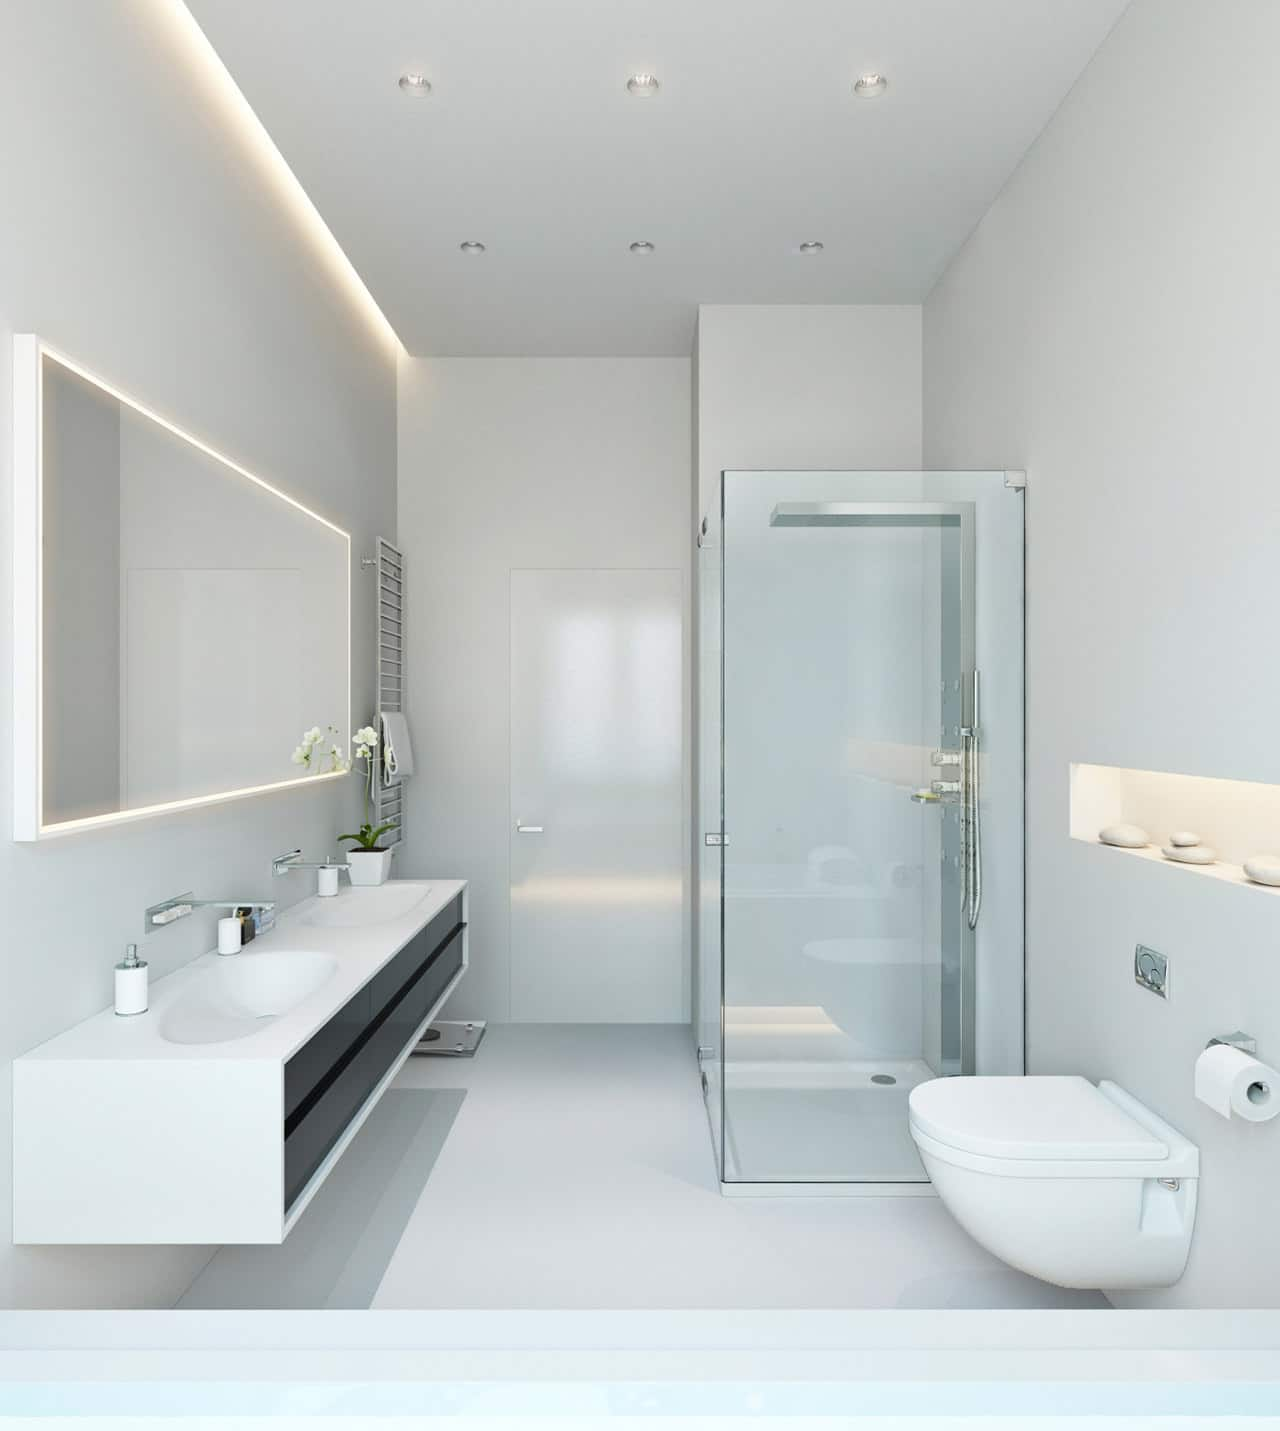 Decoraci n de interiores modernos construye hogar for Bathroom design 5m2